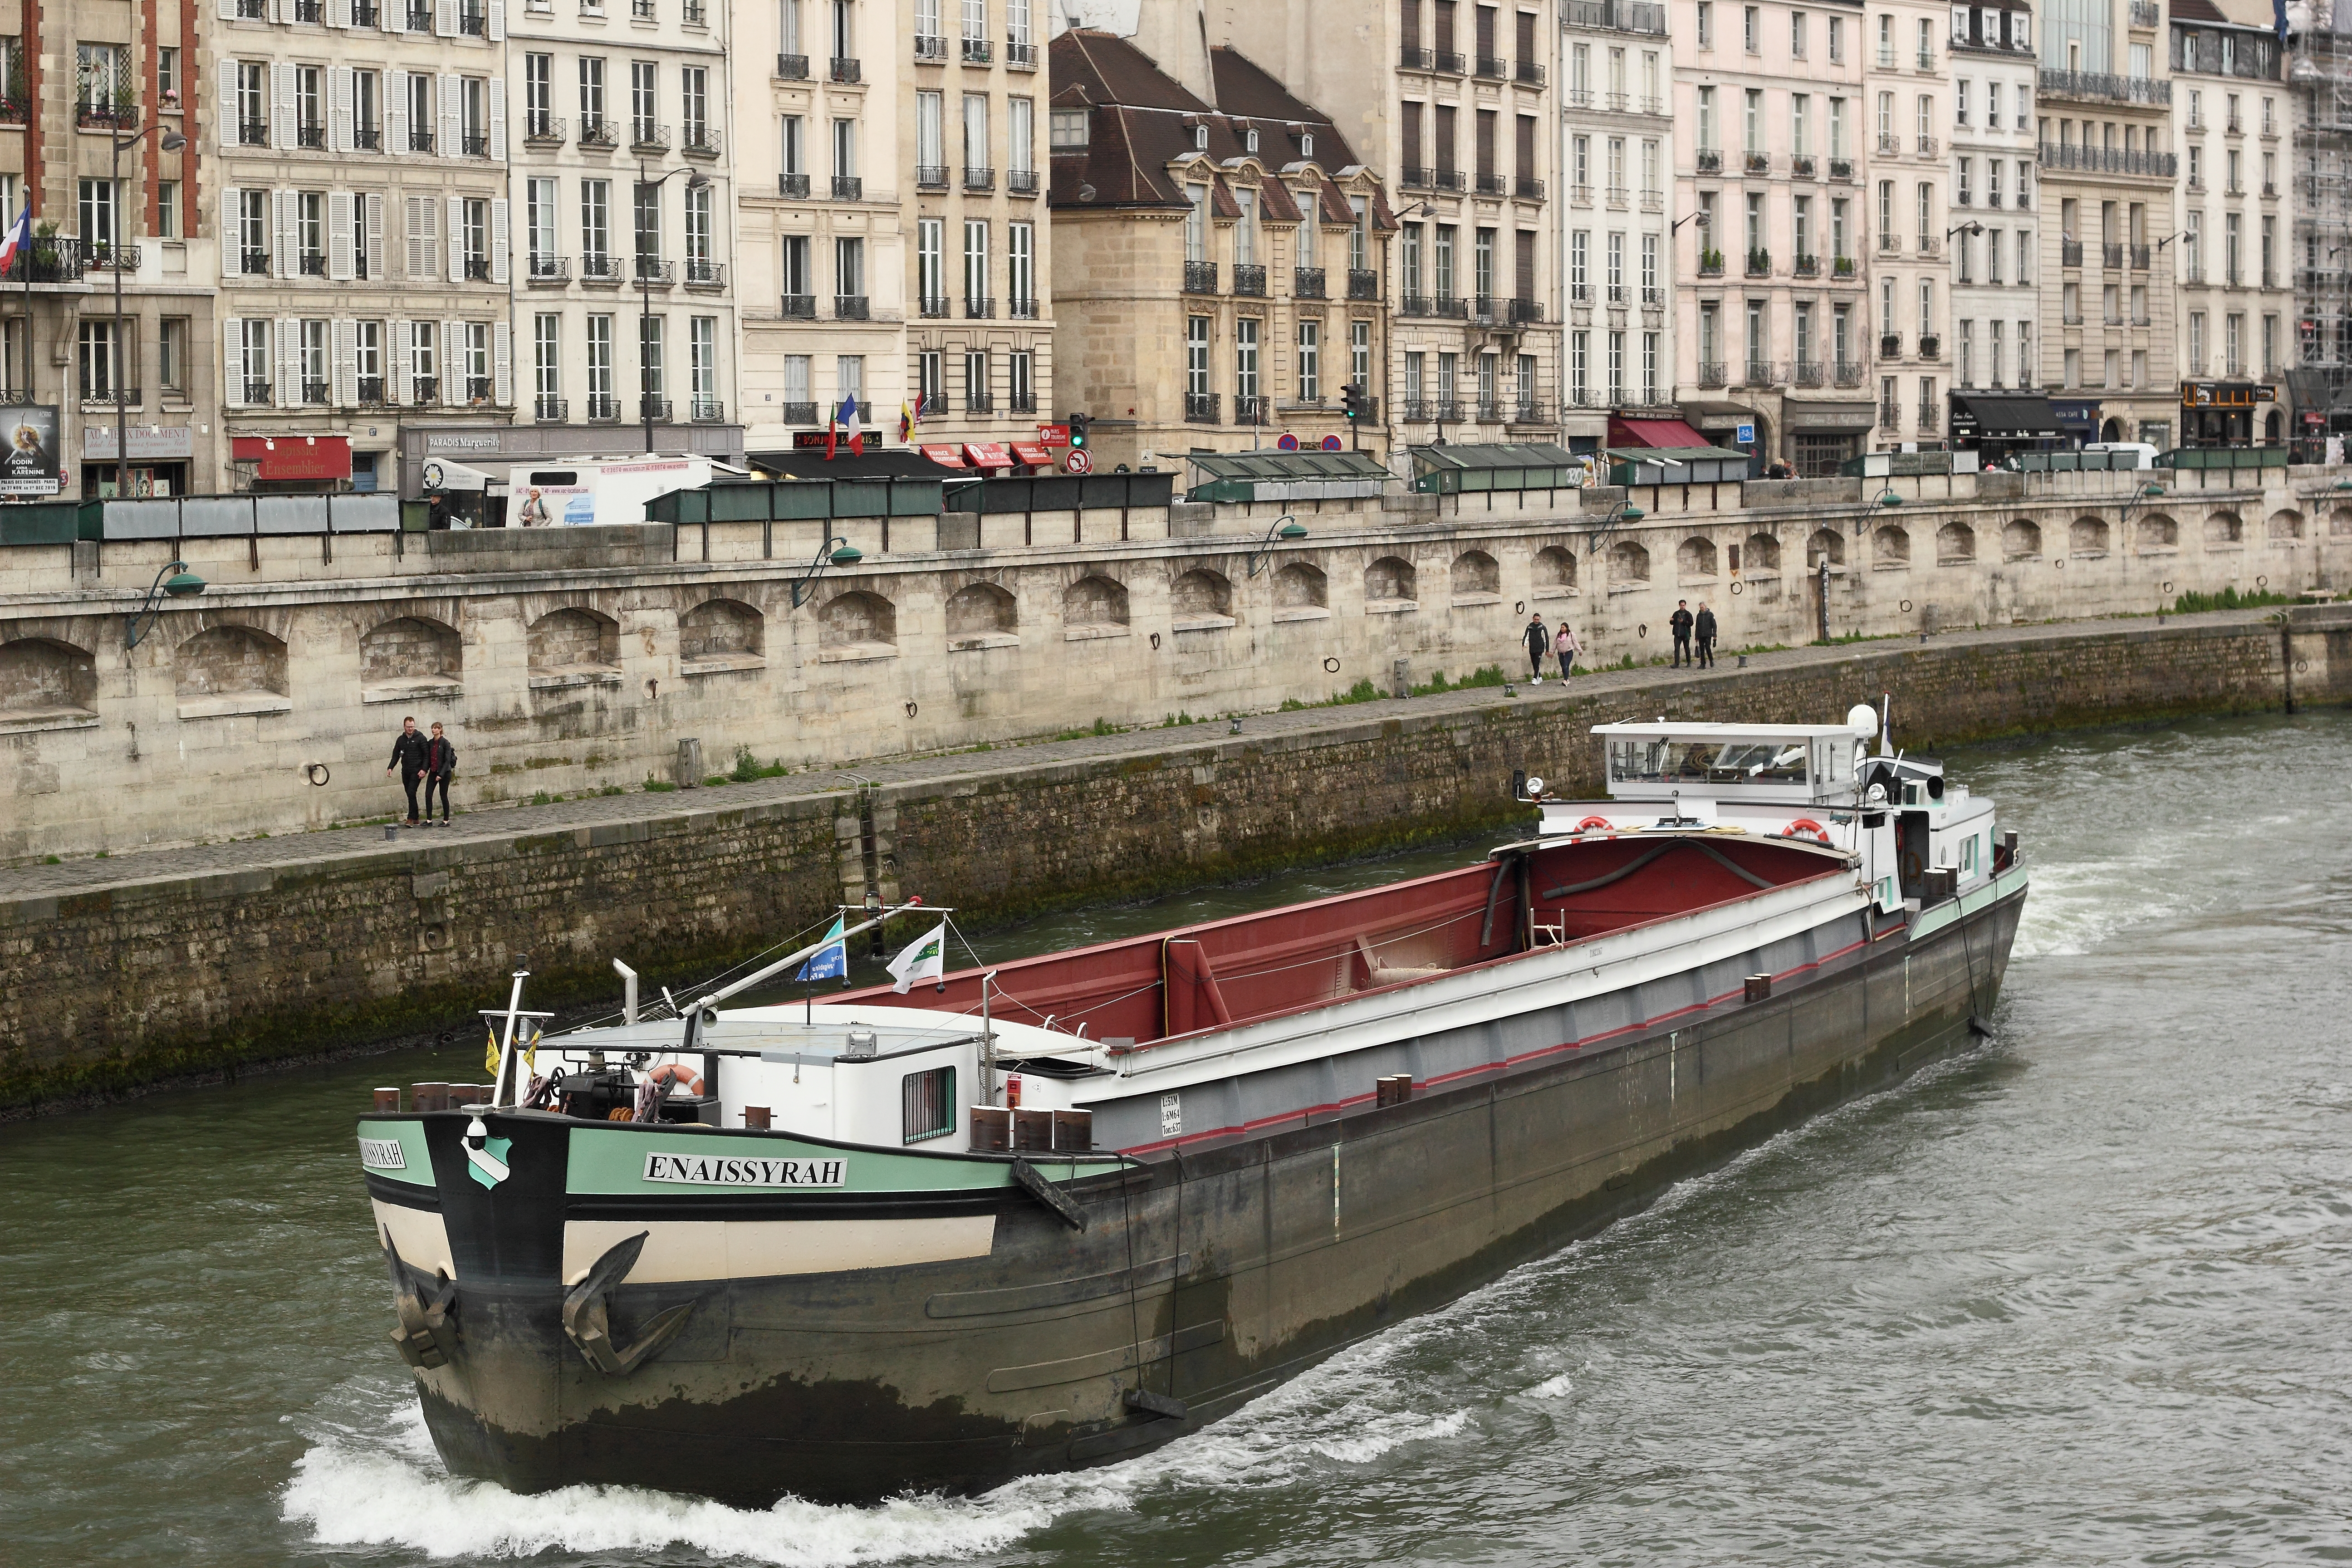 Barge by the Quai des Grands-Augustins